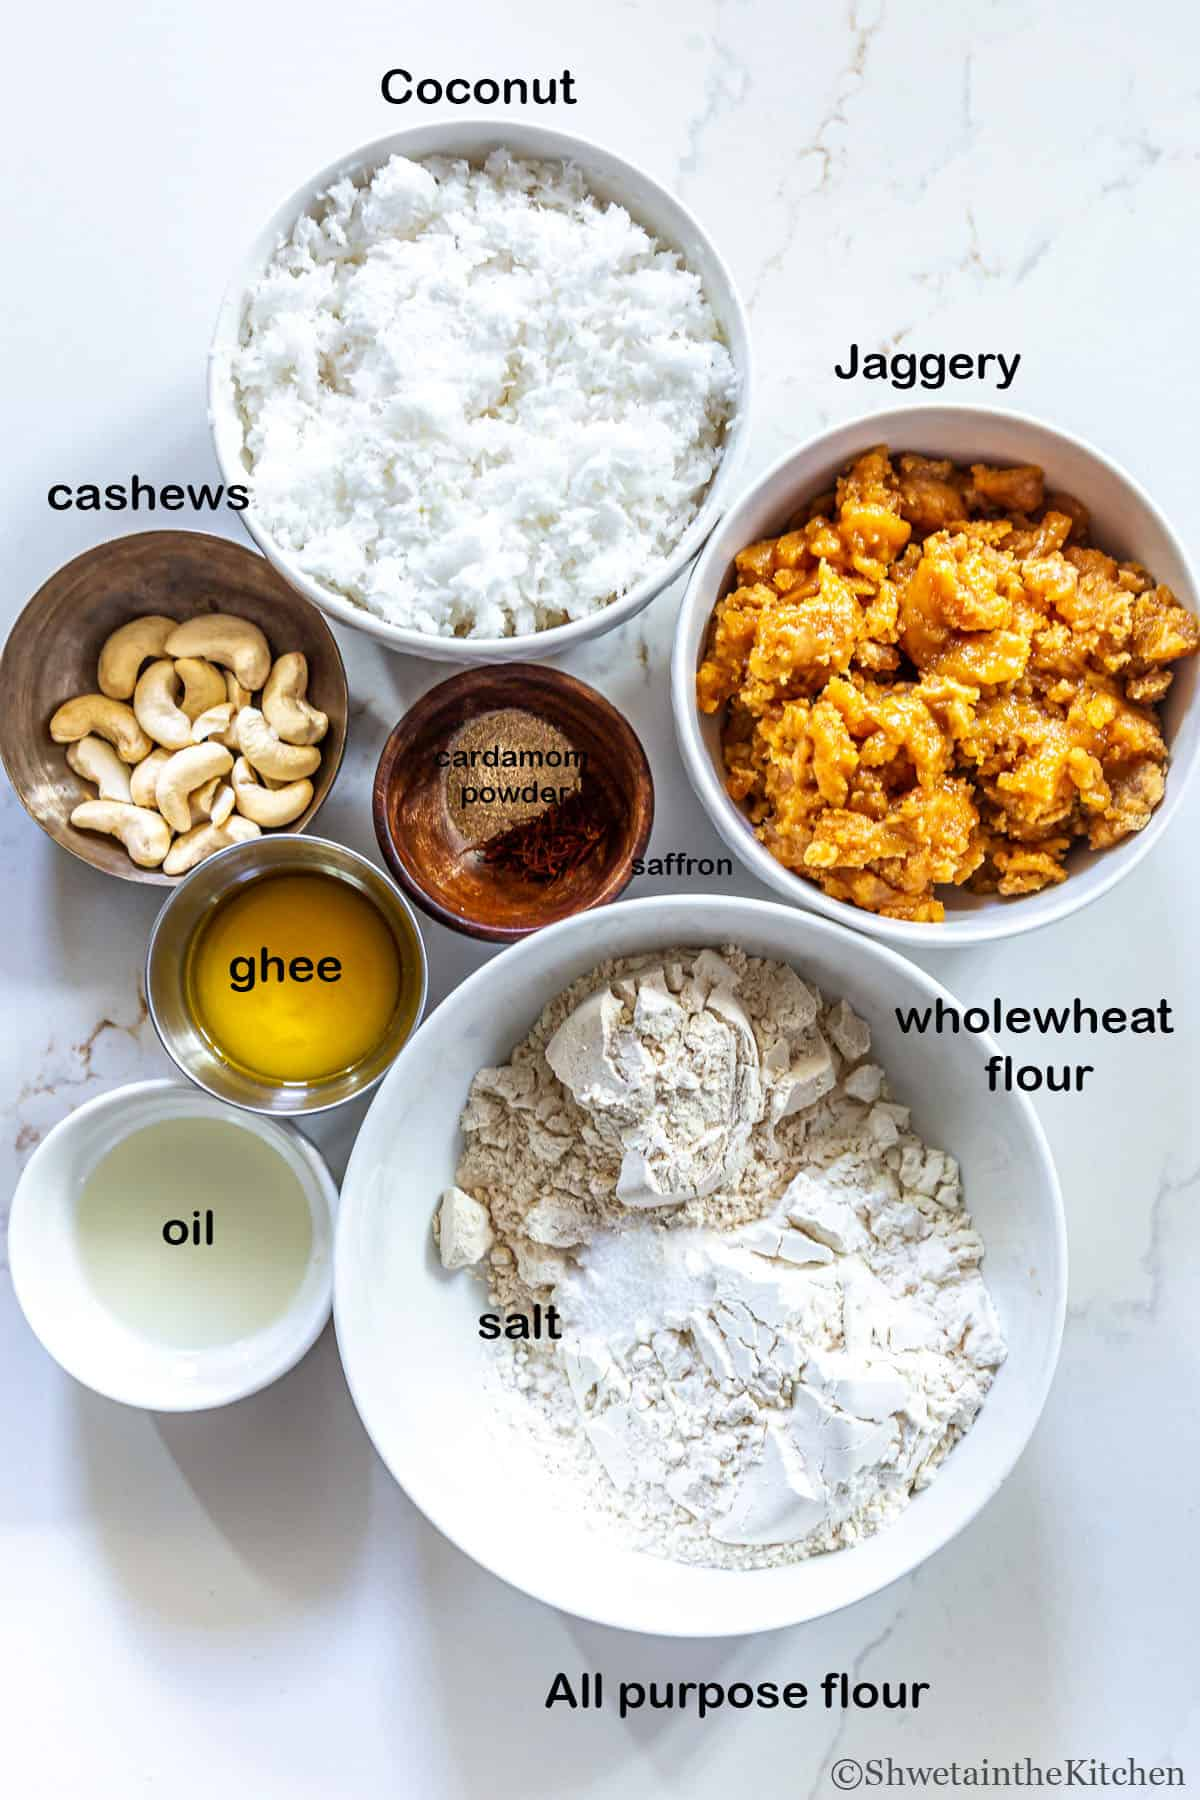 Fried Modak Ingredients laid out in bowls on a white marble surface.